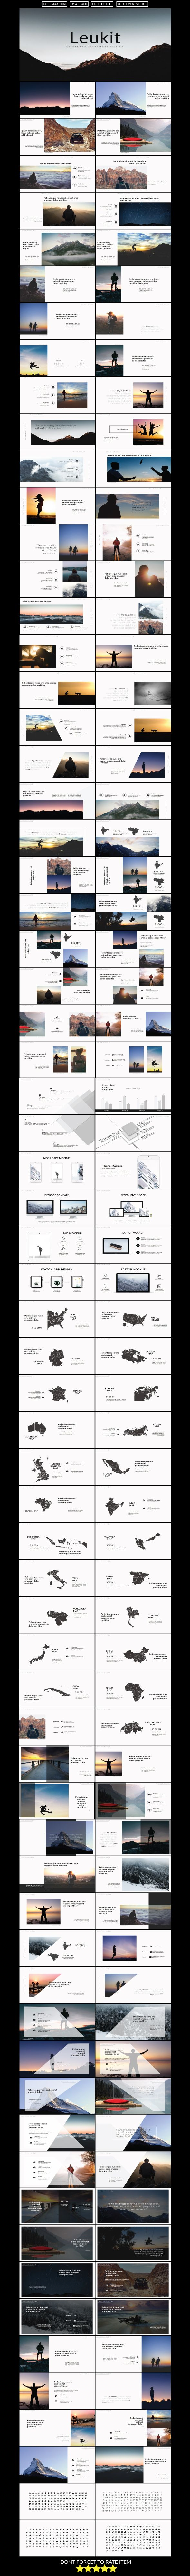 Leukit Mdrn Powerpoint Presentation Template